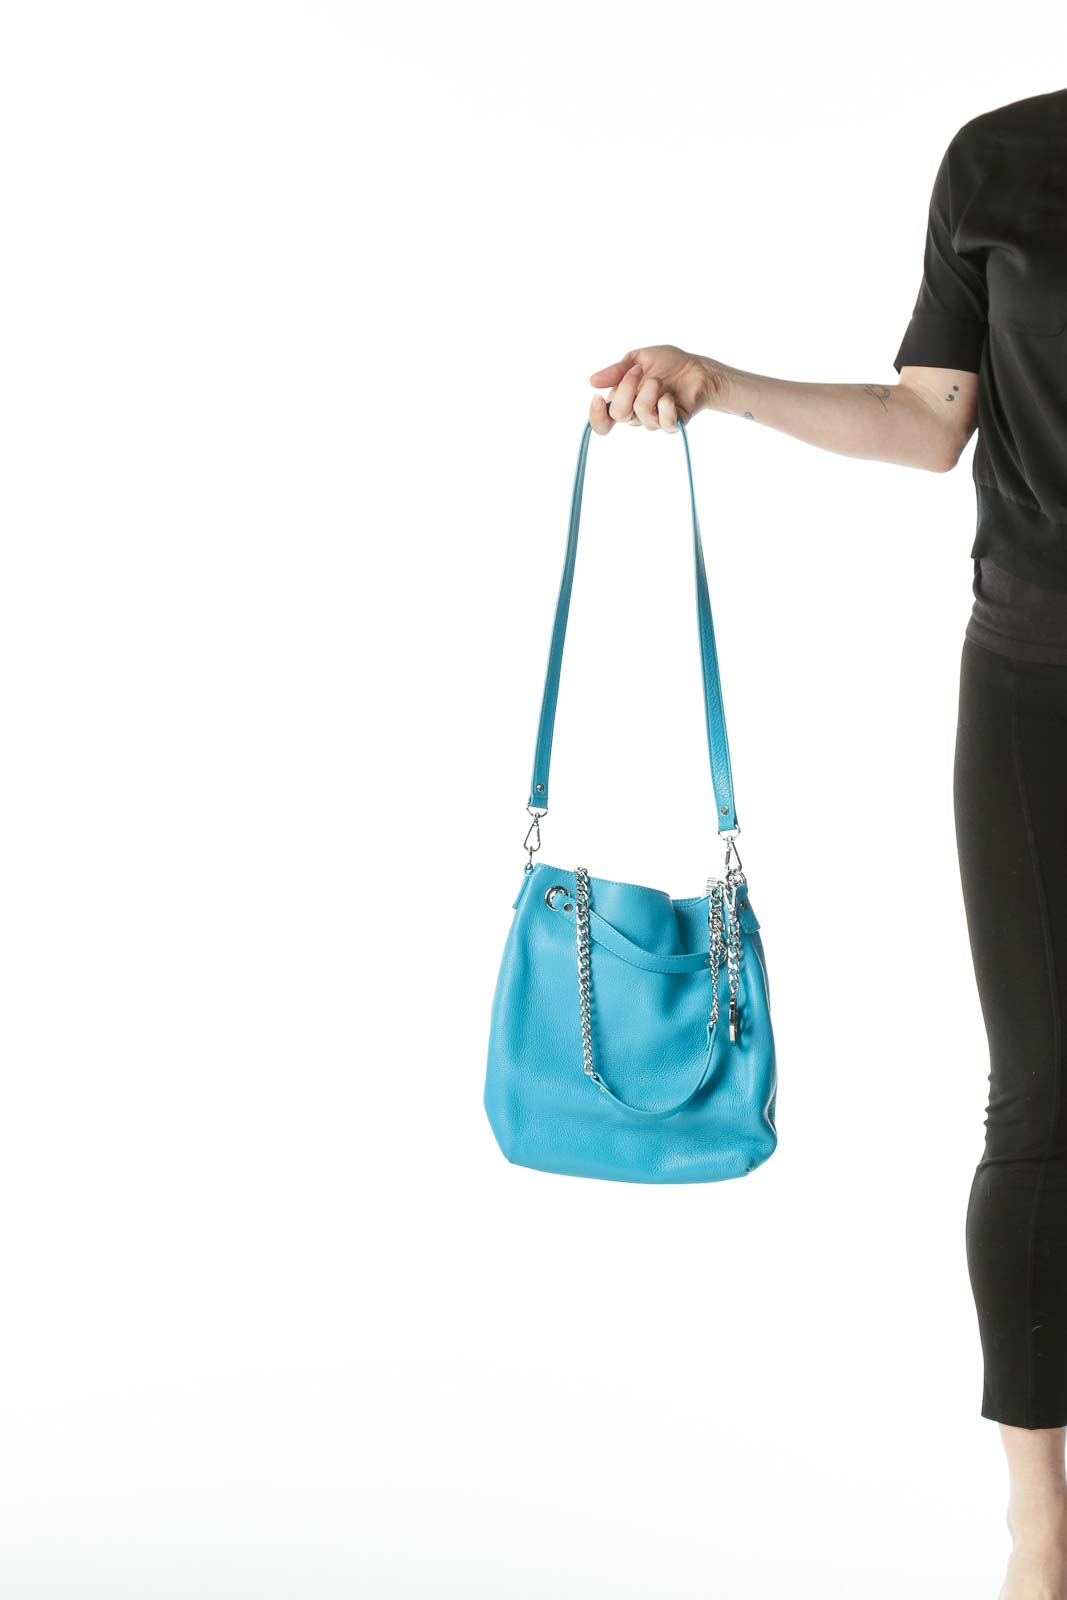 Teal Blue Shoulder Chain Bag